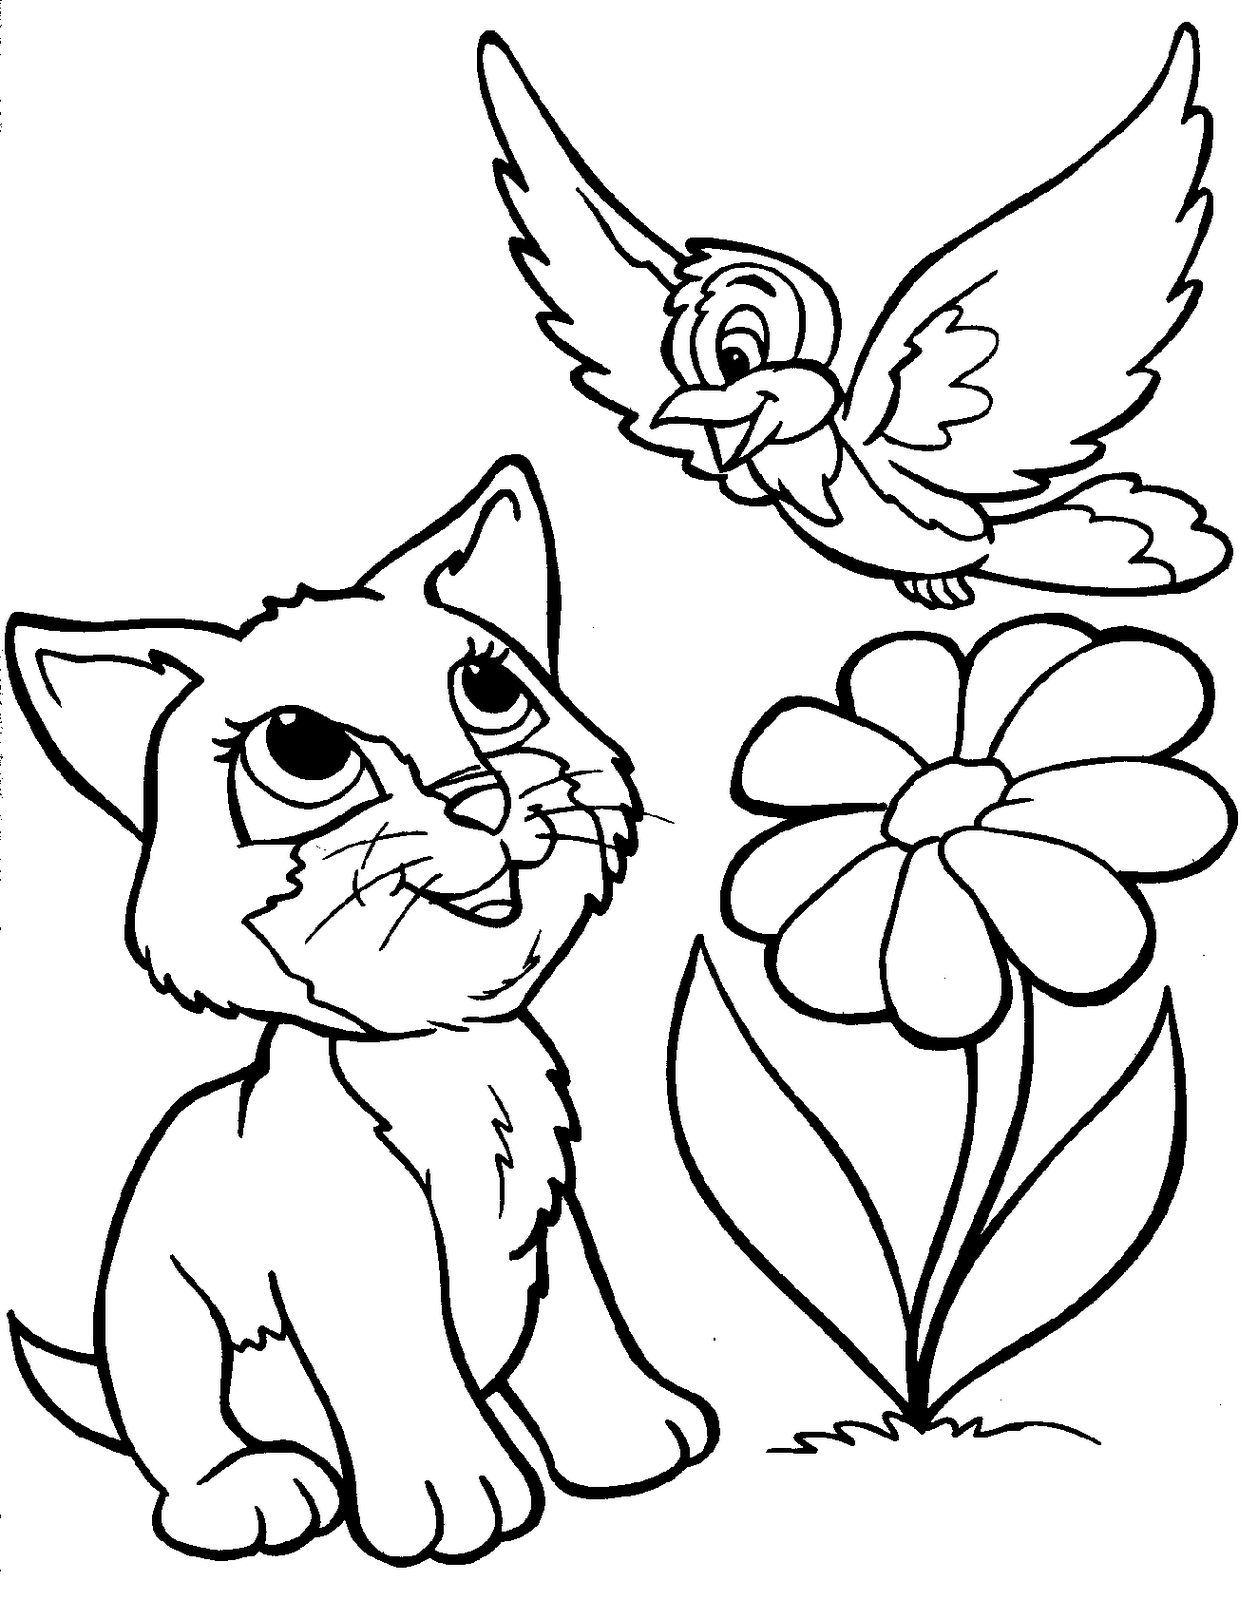 ... Color By Number Printables For Adults Free coloring pages for kids